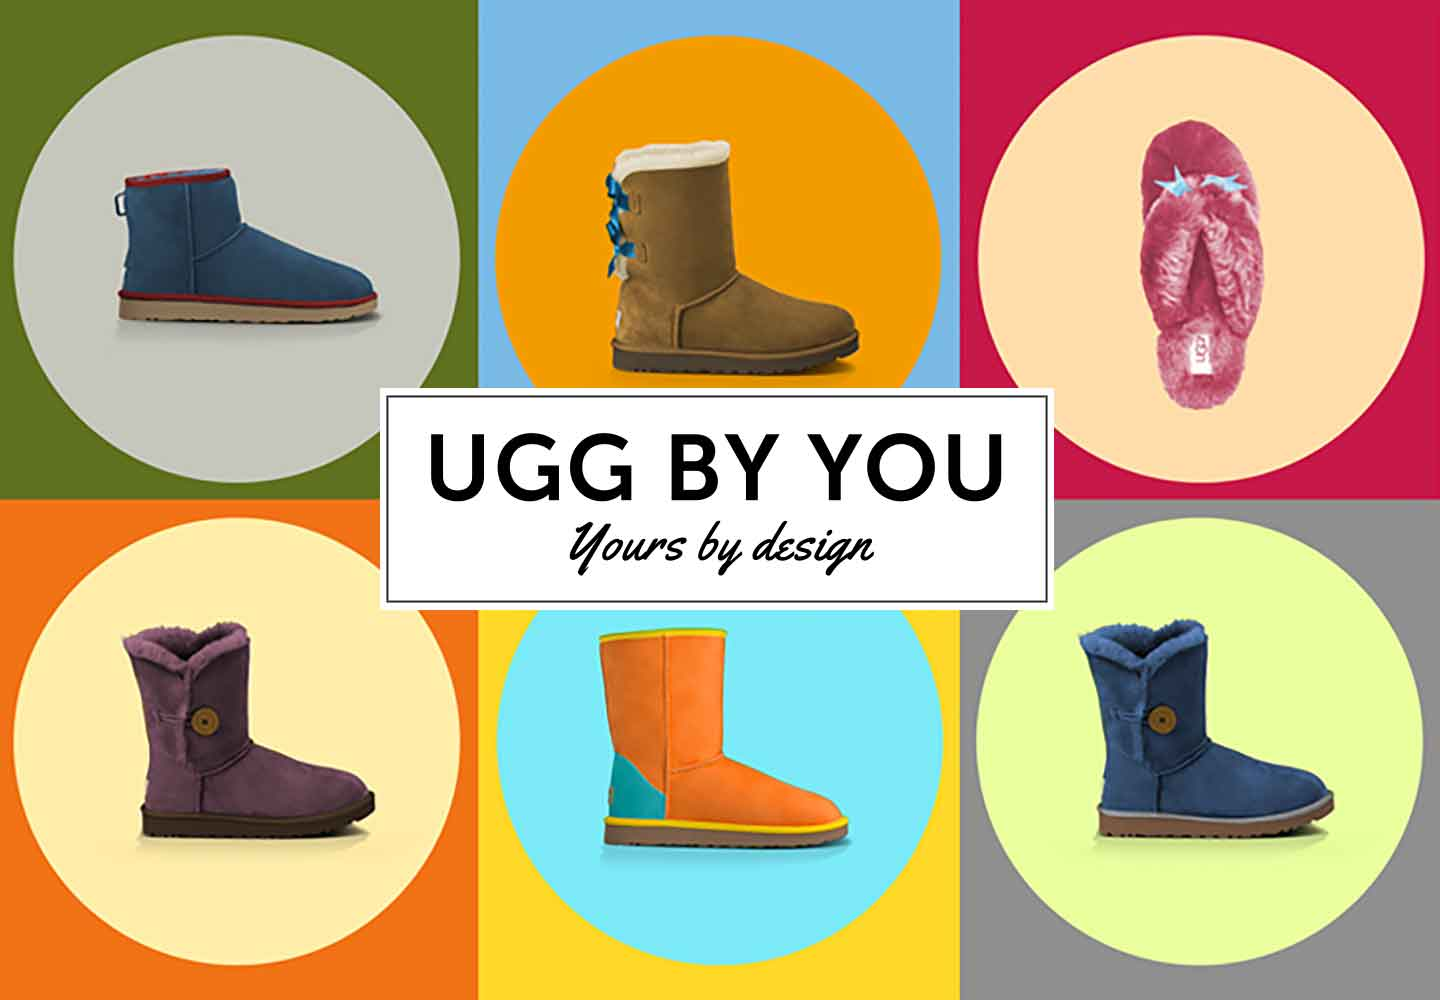 Ugg By You Yours by Design